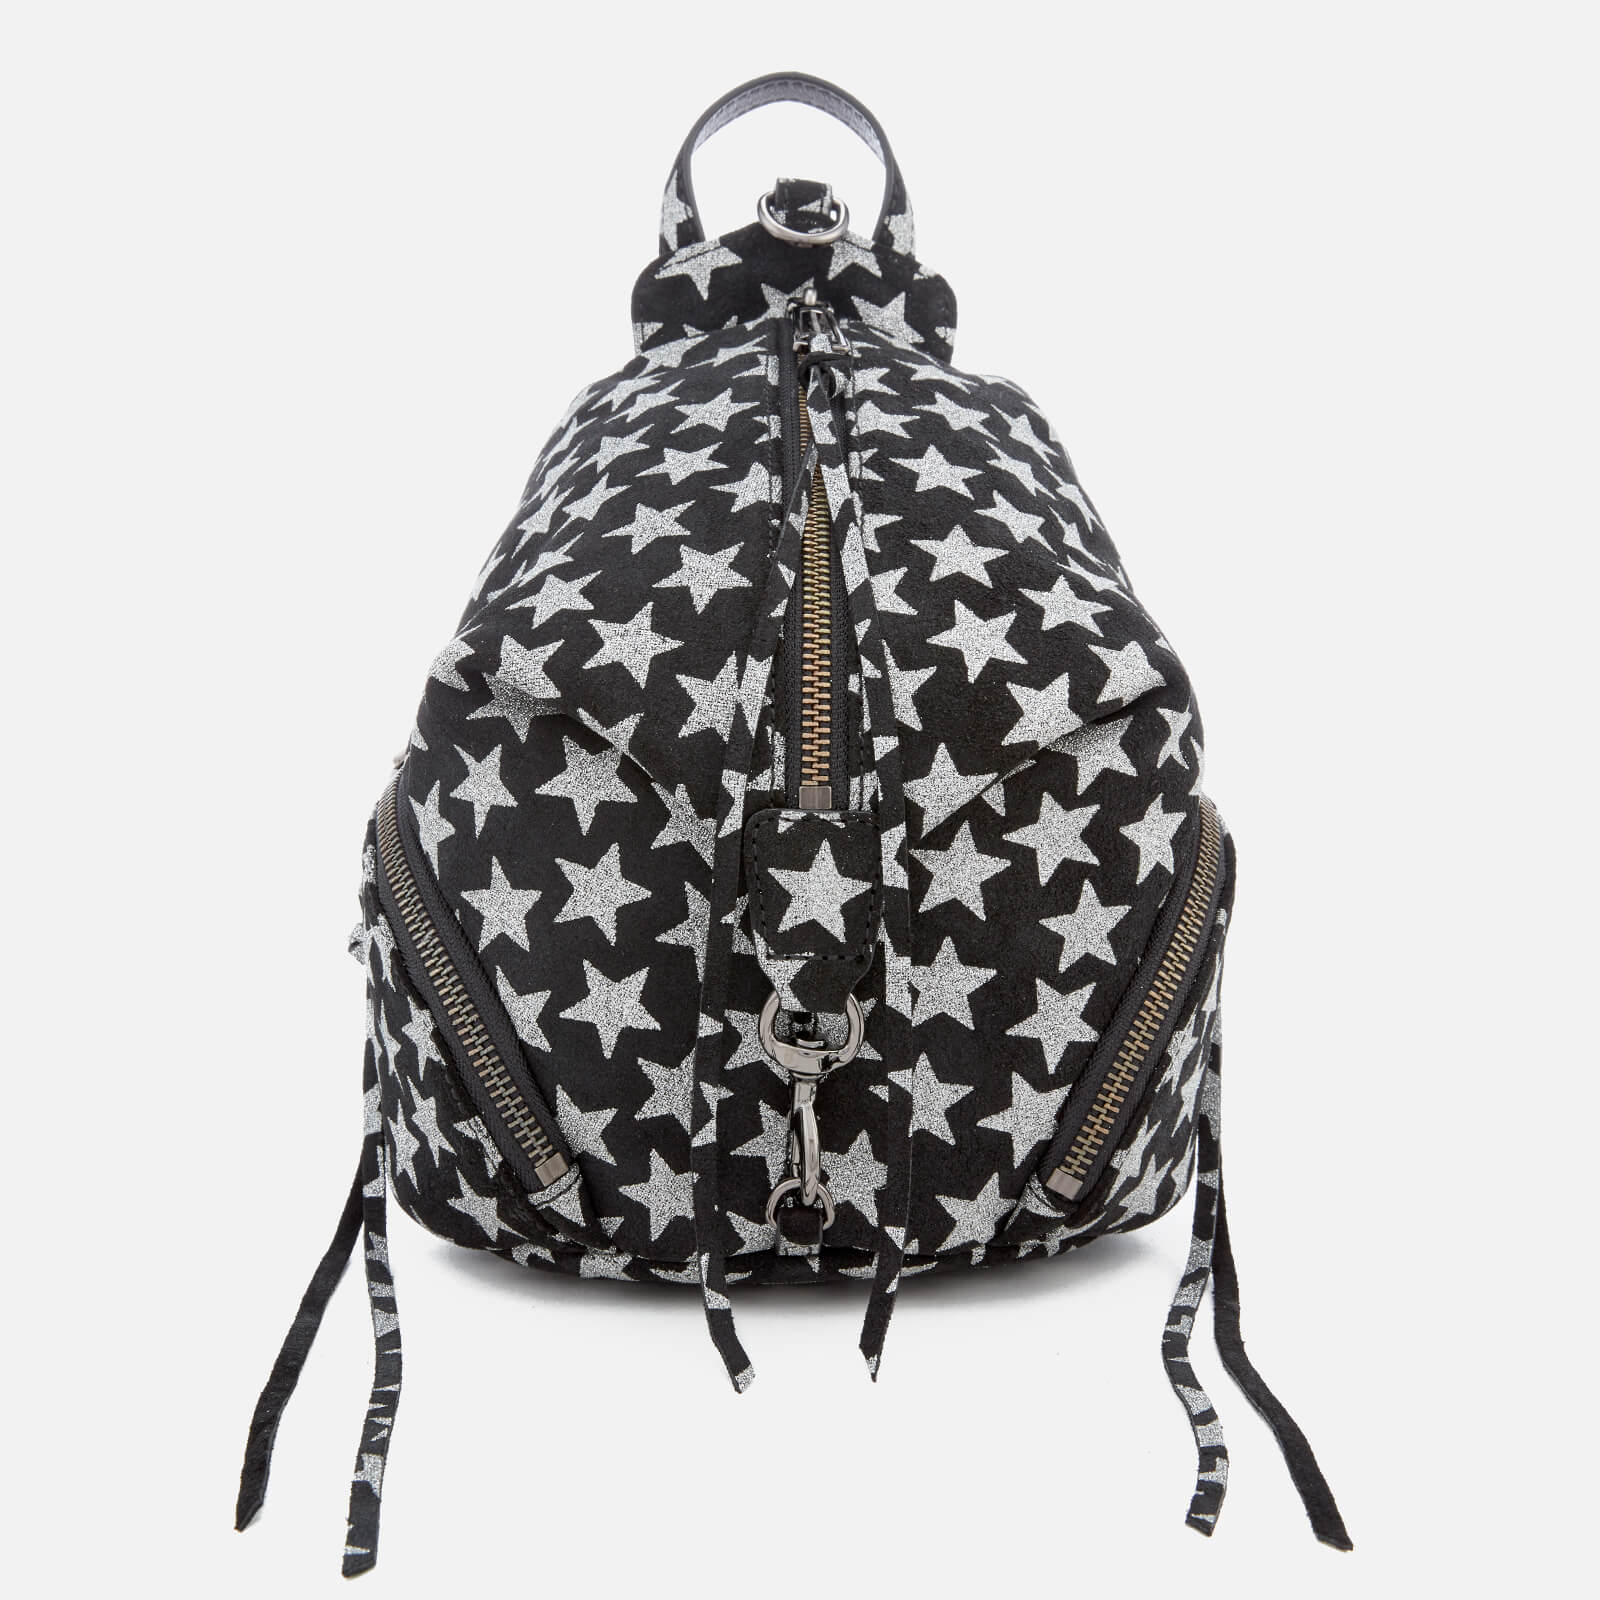 a540290a8 Rebecca Minkoff Women's Convertible Mini Julian Backpack - Black - Free UK  Delivery over £50